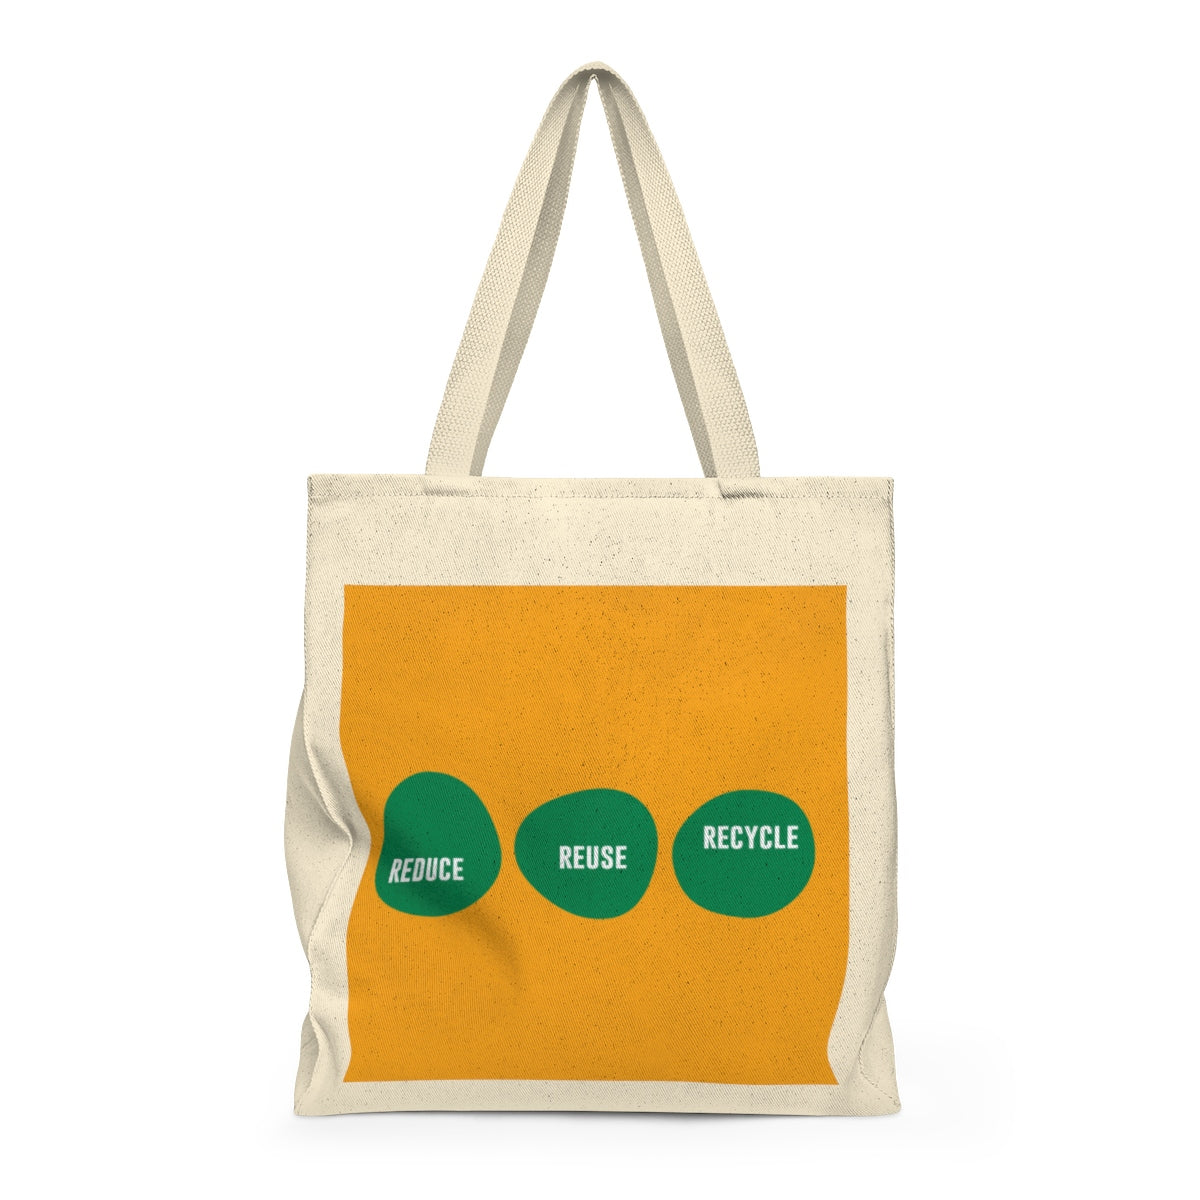 Reduce Reuse Recycle Tote & Reusable Grocery  Bag